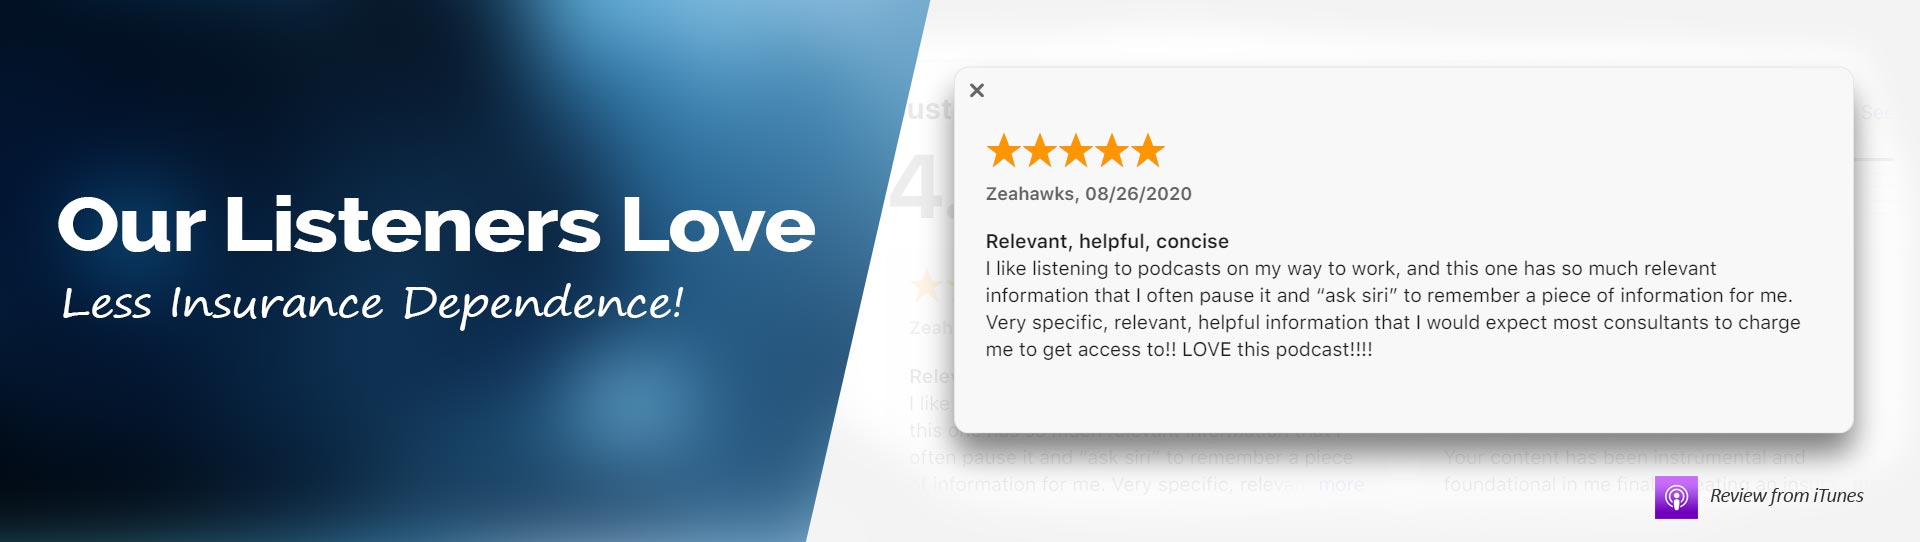 Listener Review